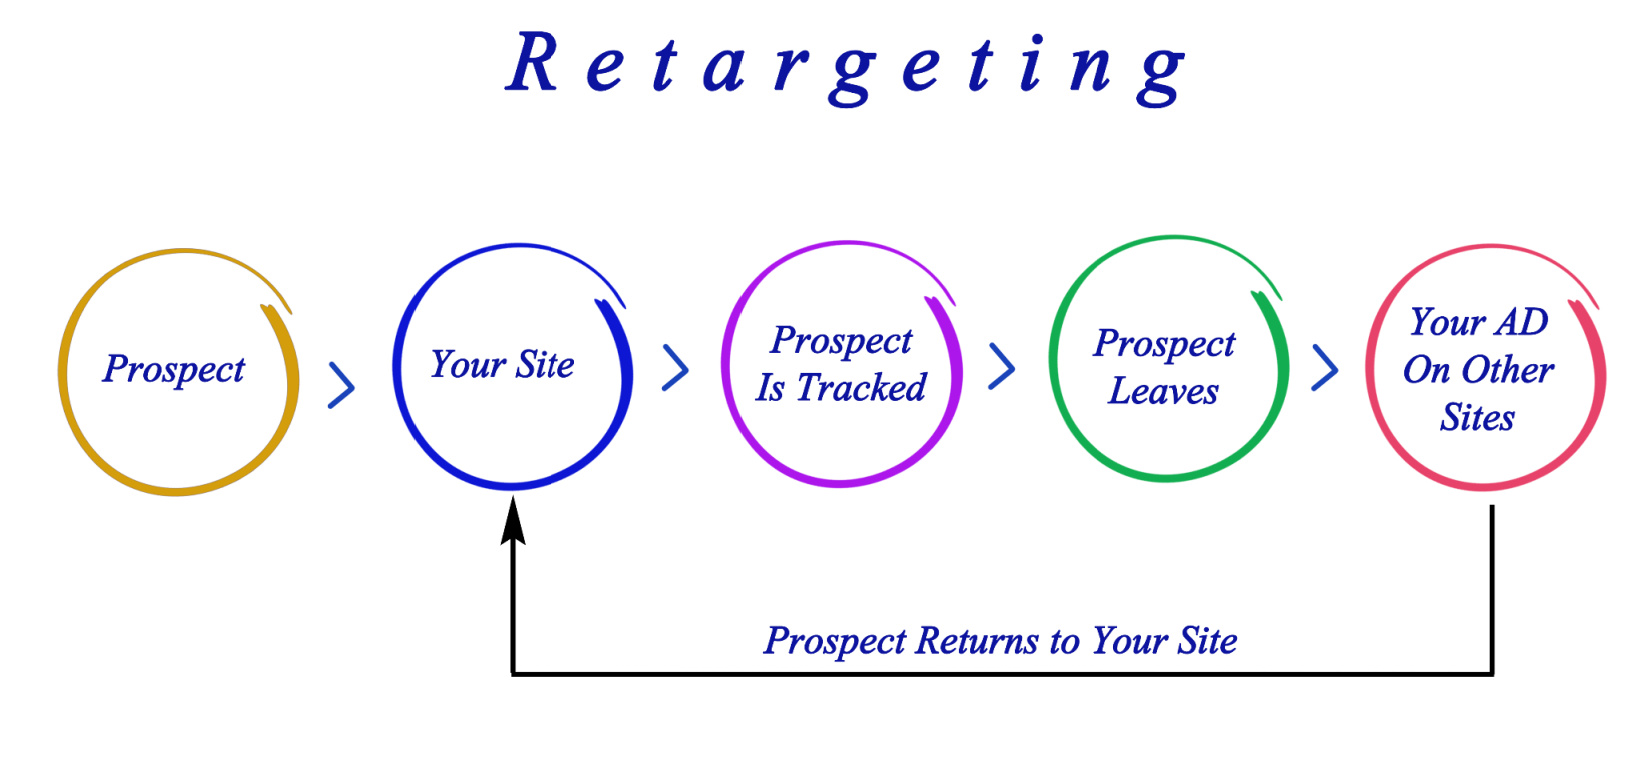 A model of remarketing